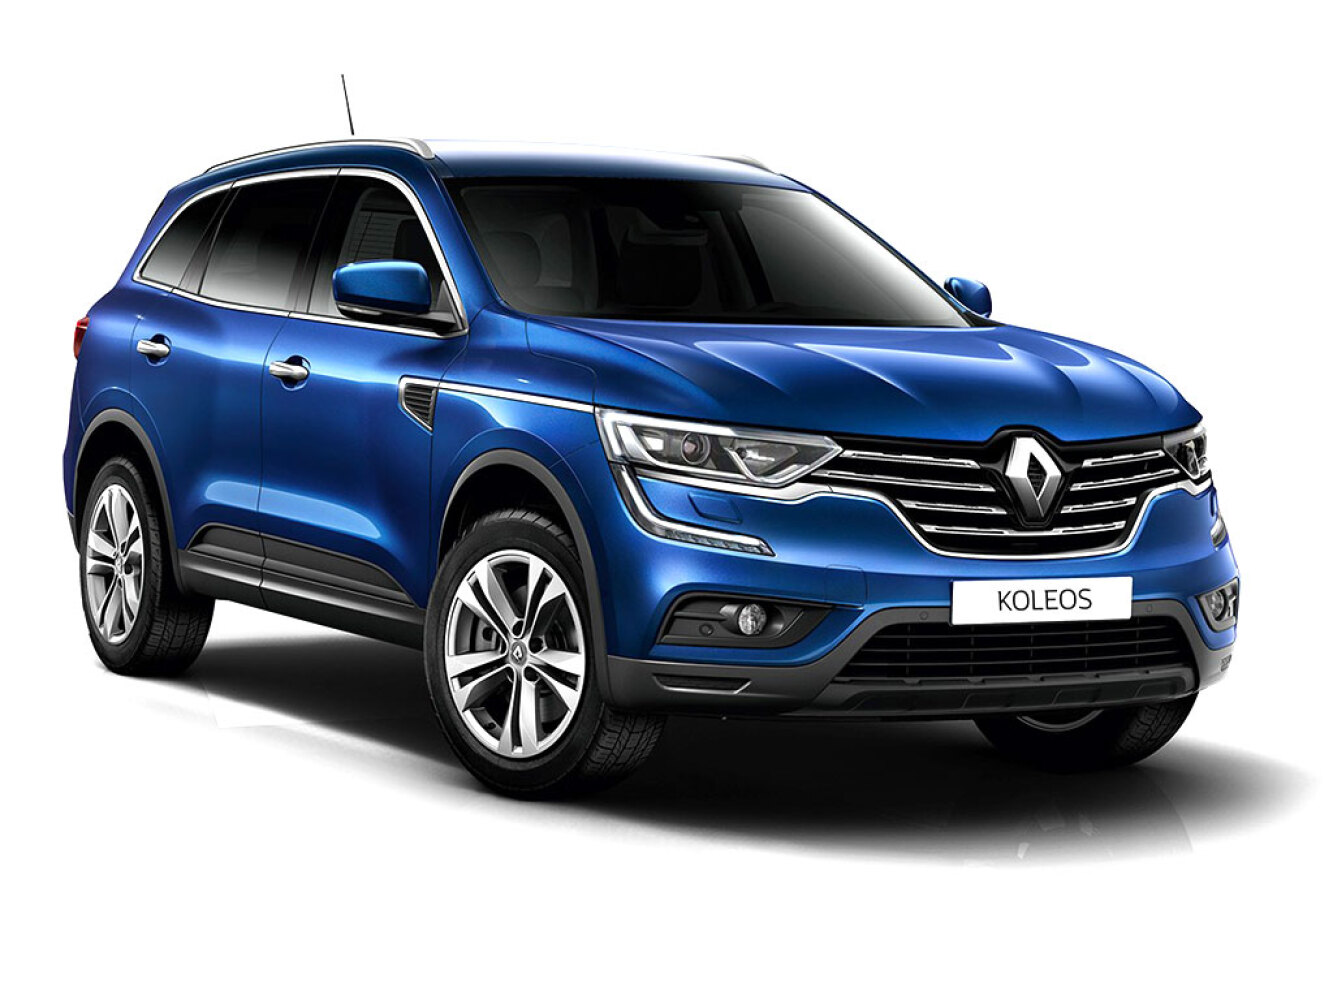 new renault koleos 2 0 dci dynamique s nav 5dr x tronic. Black Bedroom Furniture Sets. Home Design Ideas